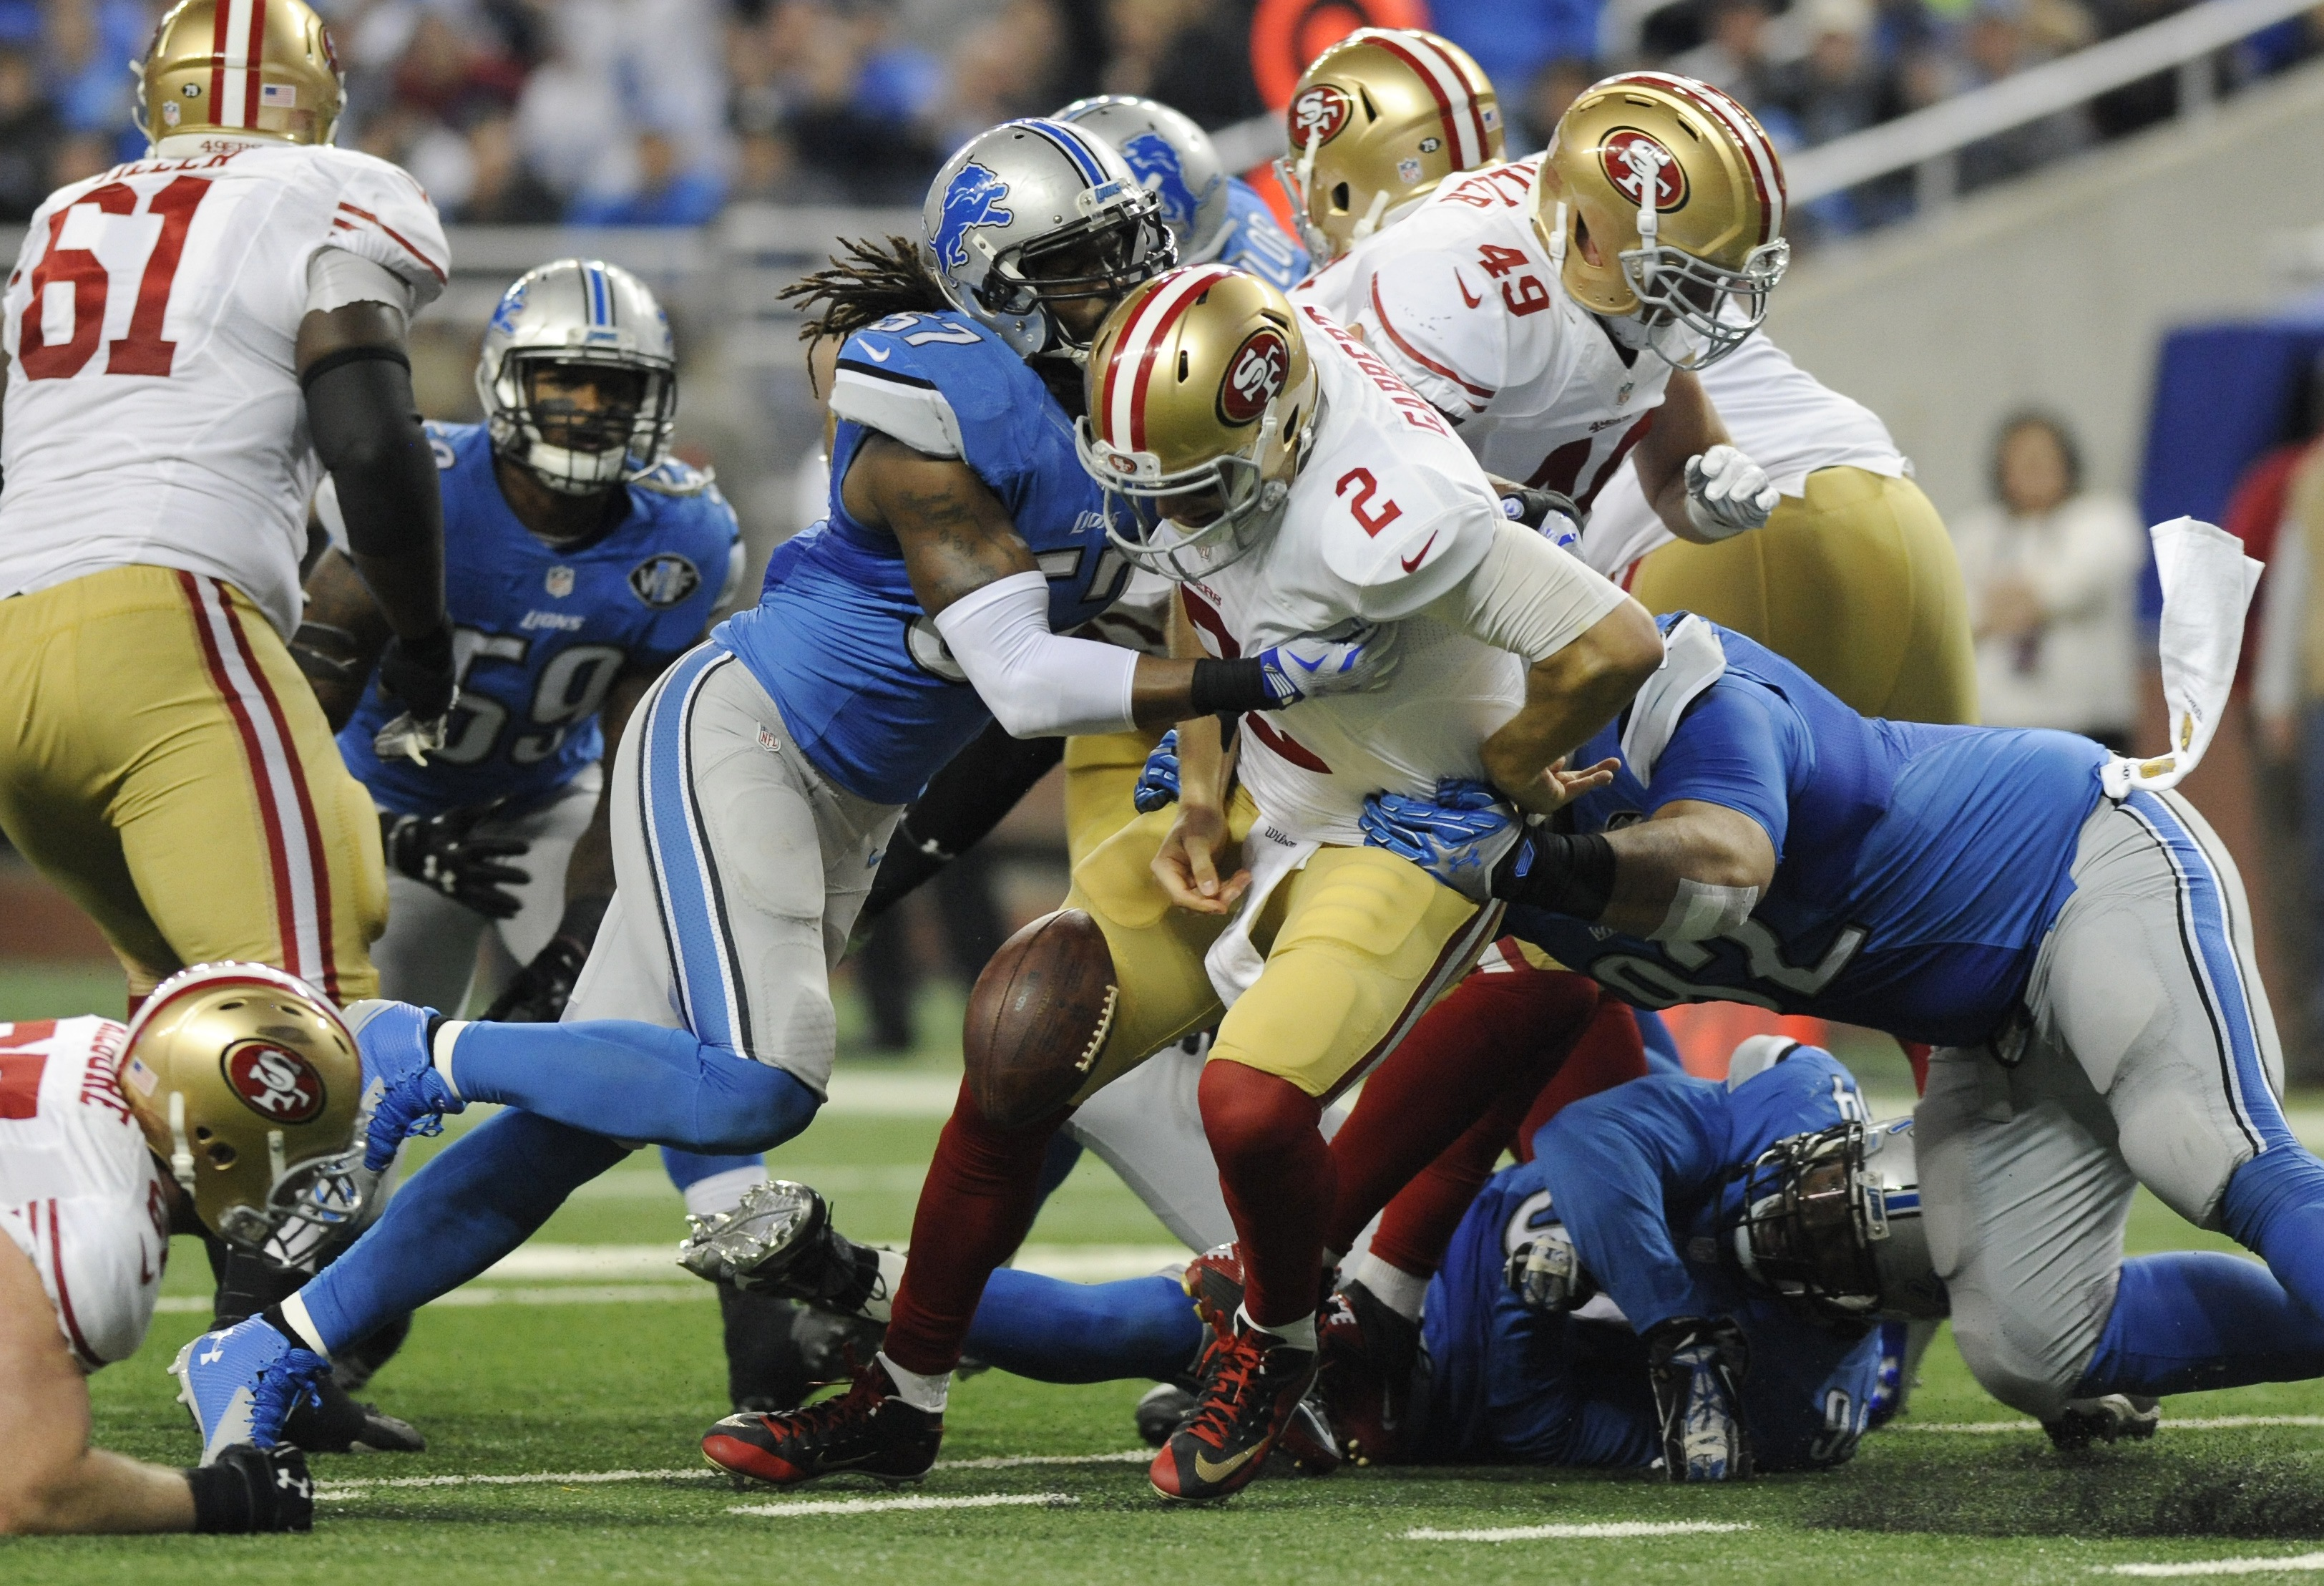 San Francisco 49ers quarterback Blaine Gabbert (2) loses control of the ball and fumbles during a hit by Detroit Lions outside linebacker Josh Bynes (57) during the first half of an NFL football game, Sunday, Dec. 27, 2015, in Detroit. (AP Photo/Jose Juar